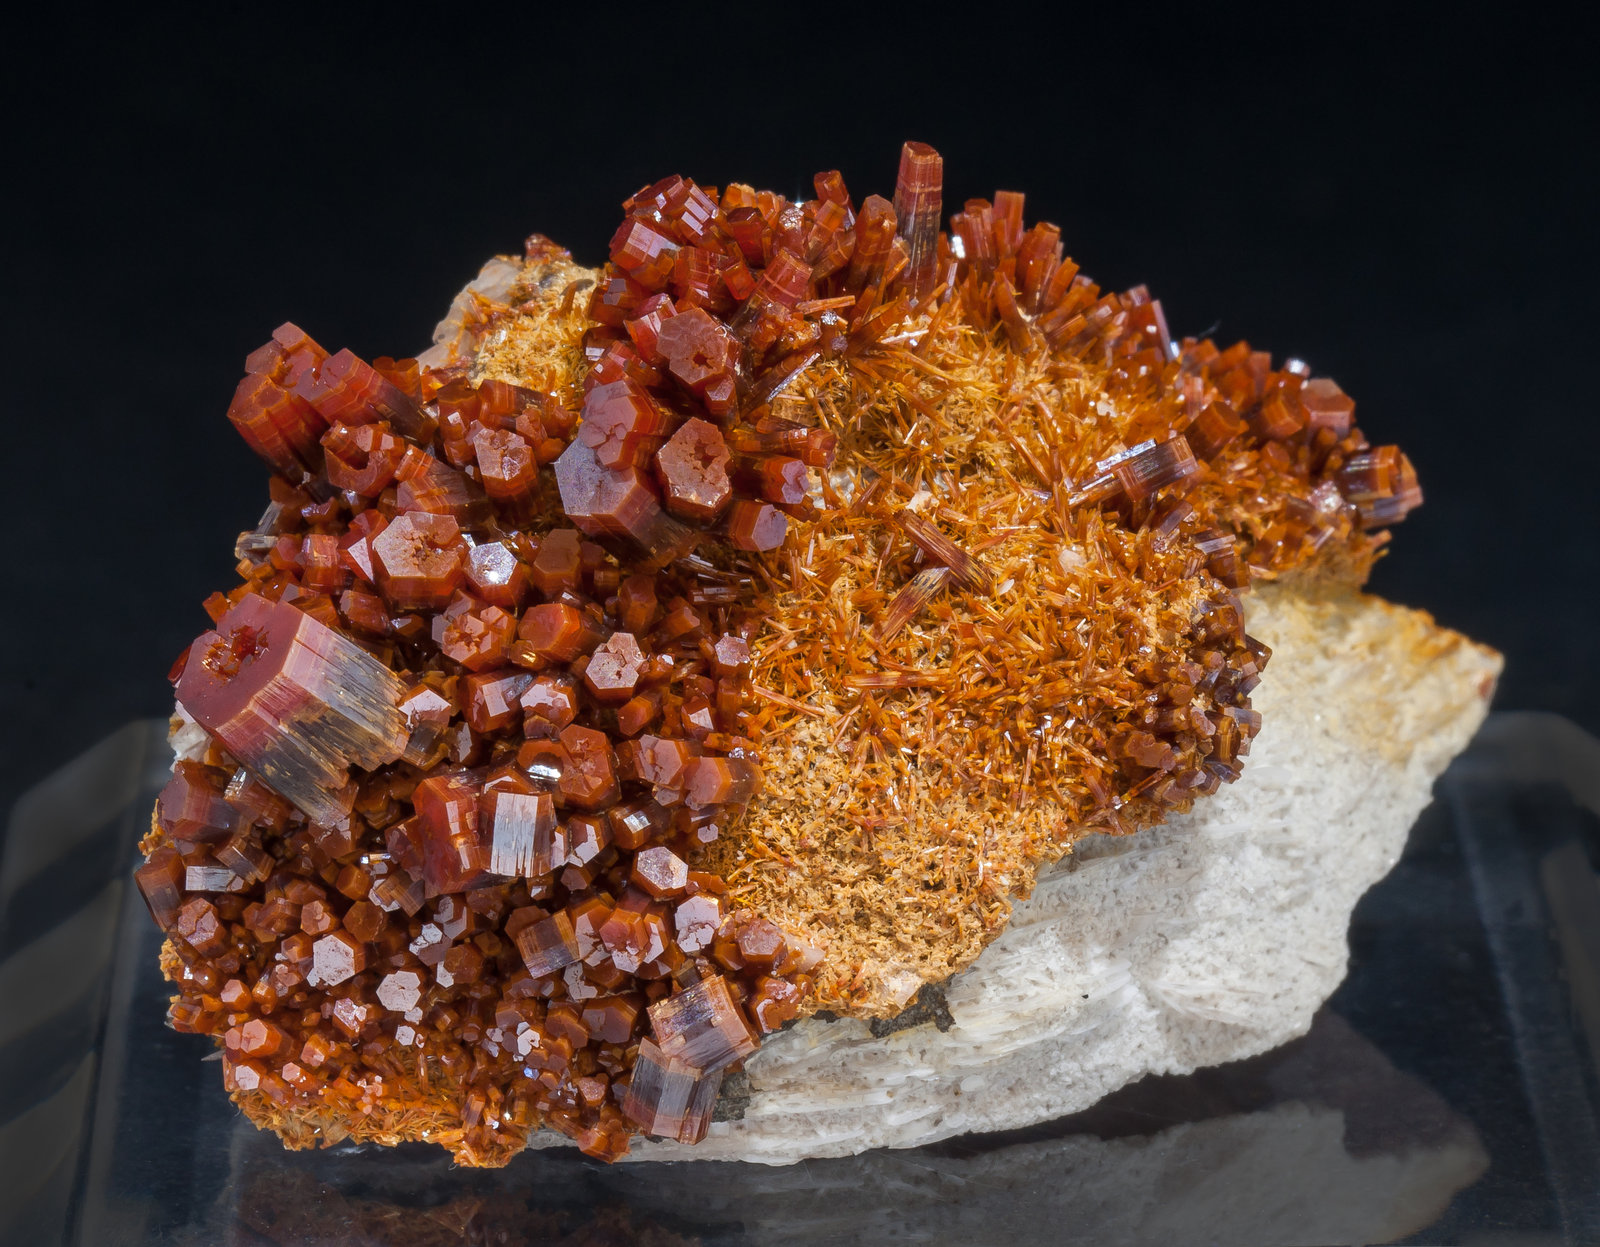 specimens/s_imagesAM2/Vanadinite-EF26AM2f.jpg